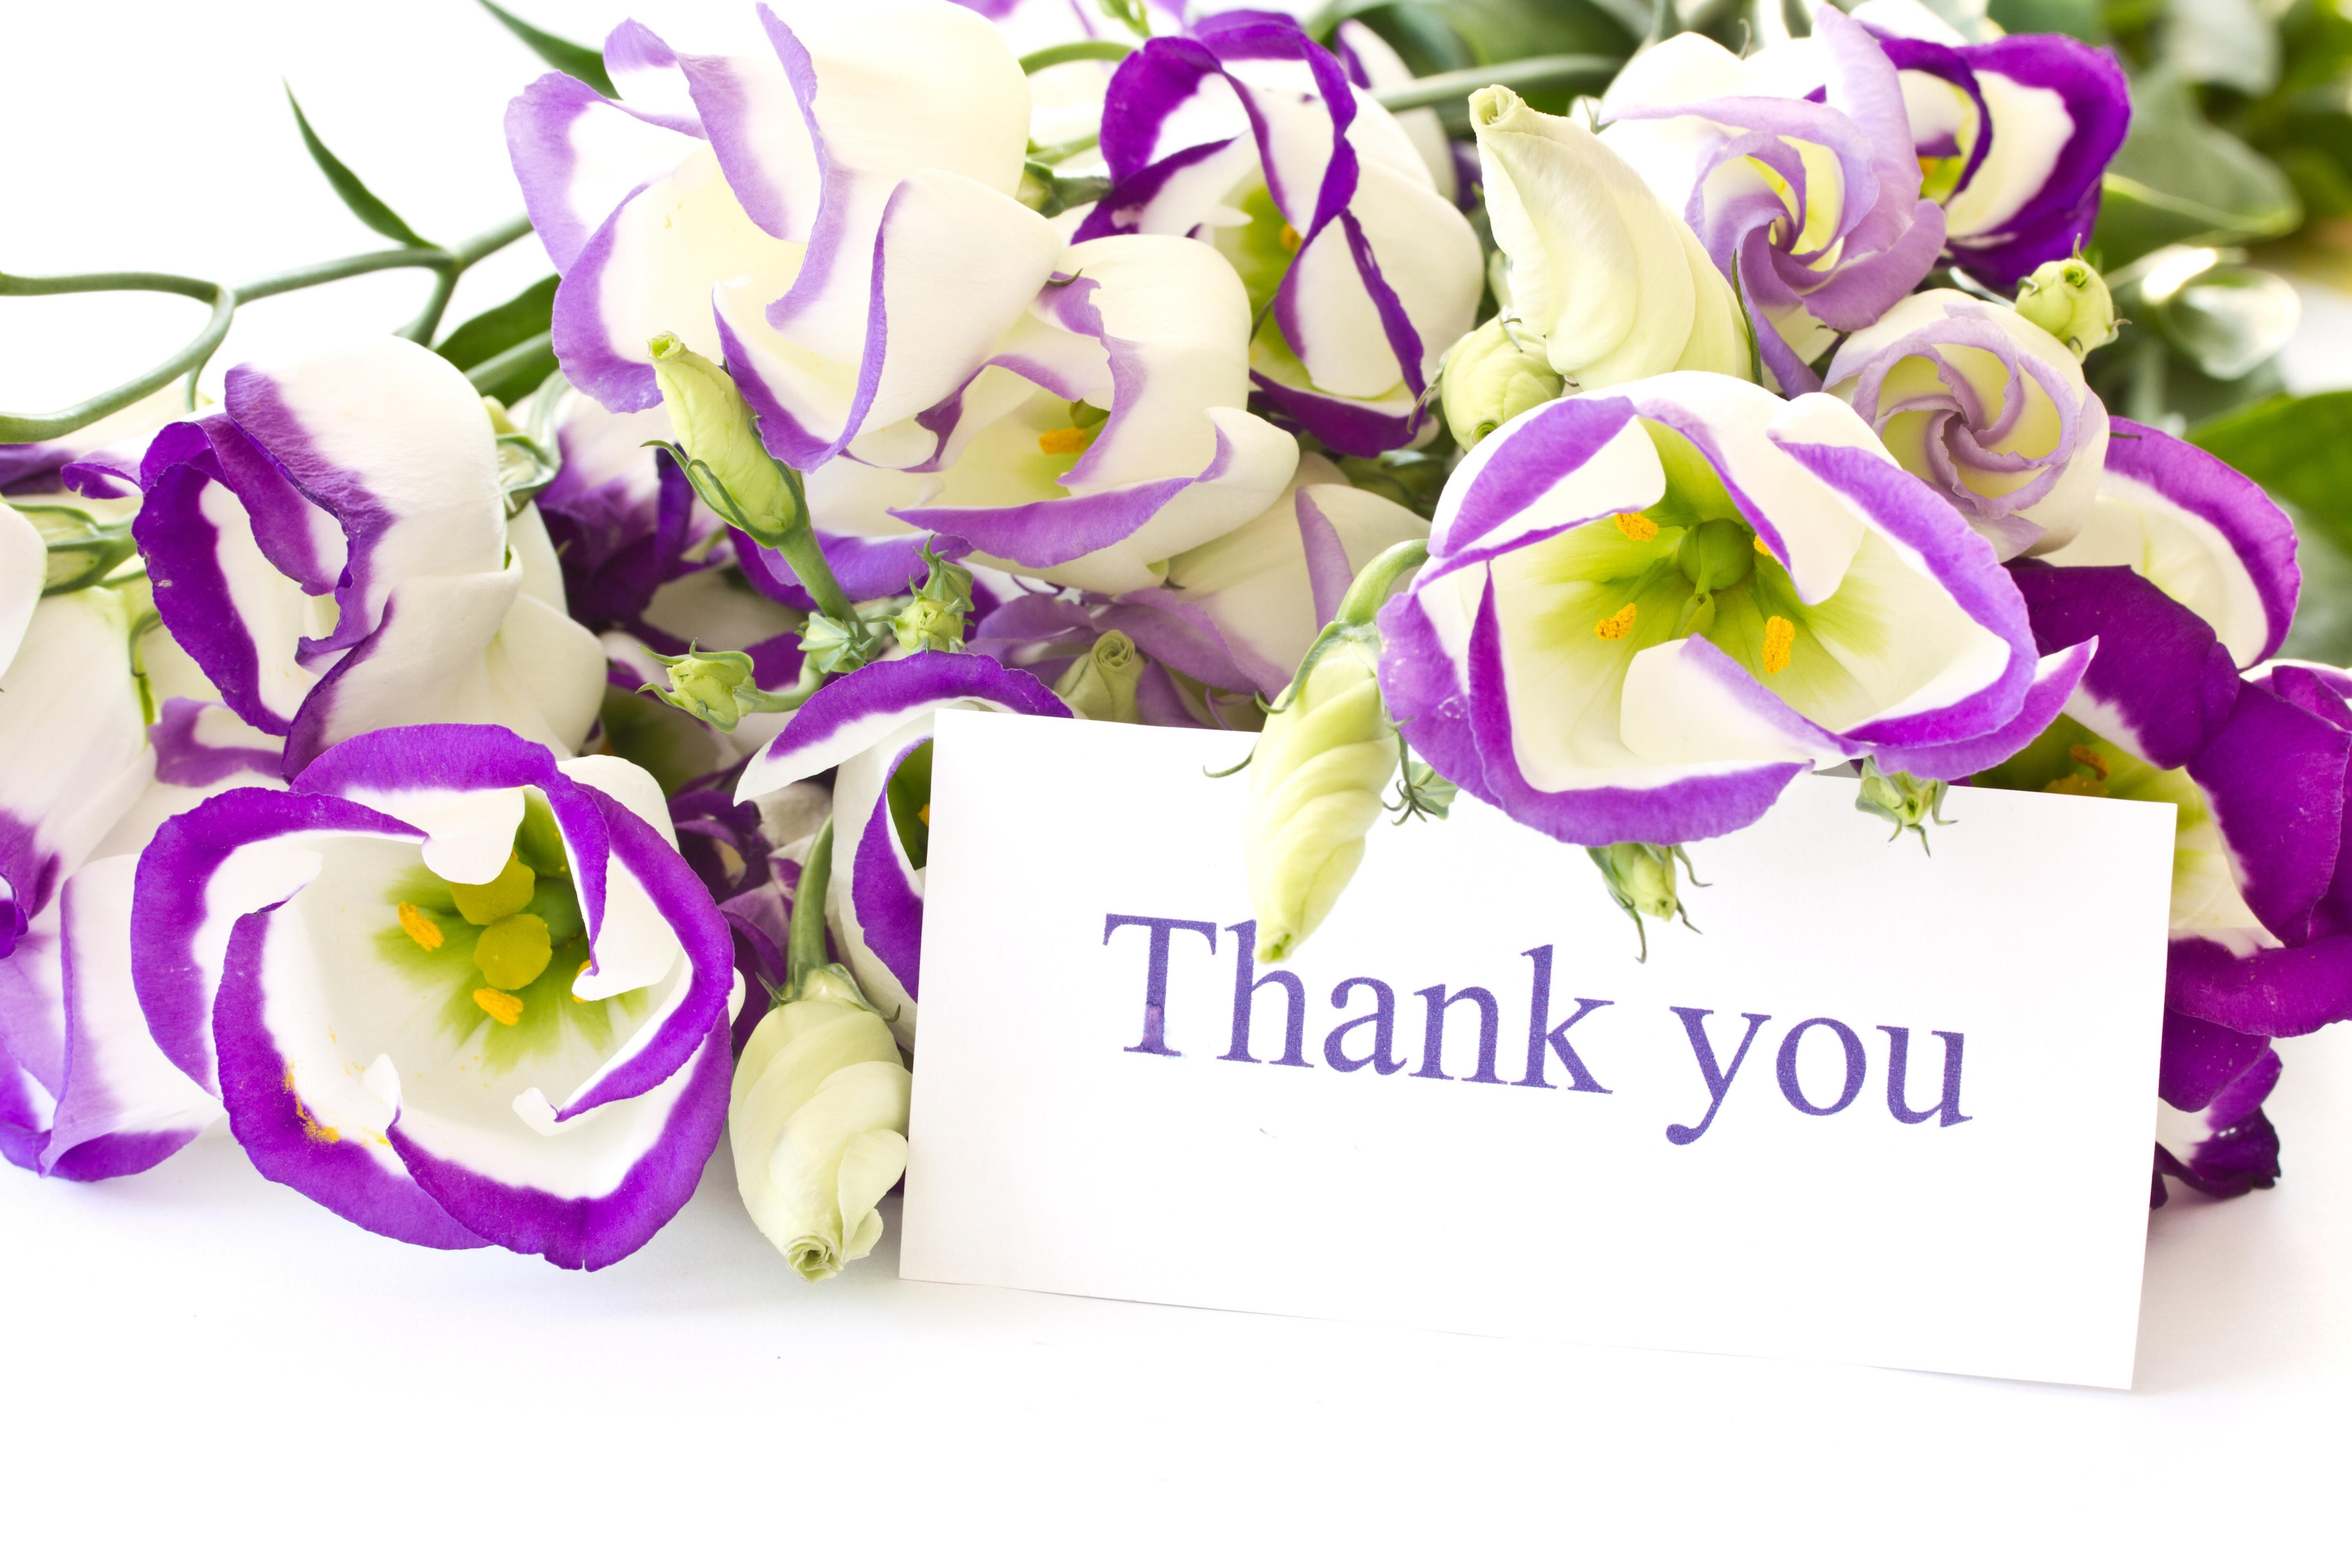 Images of thank you flowers wallpaper picture with hd